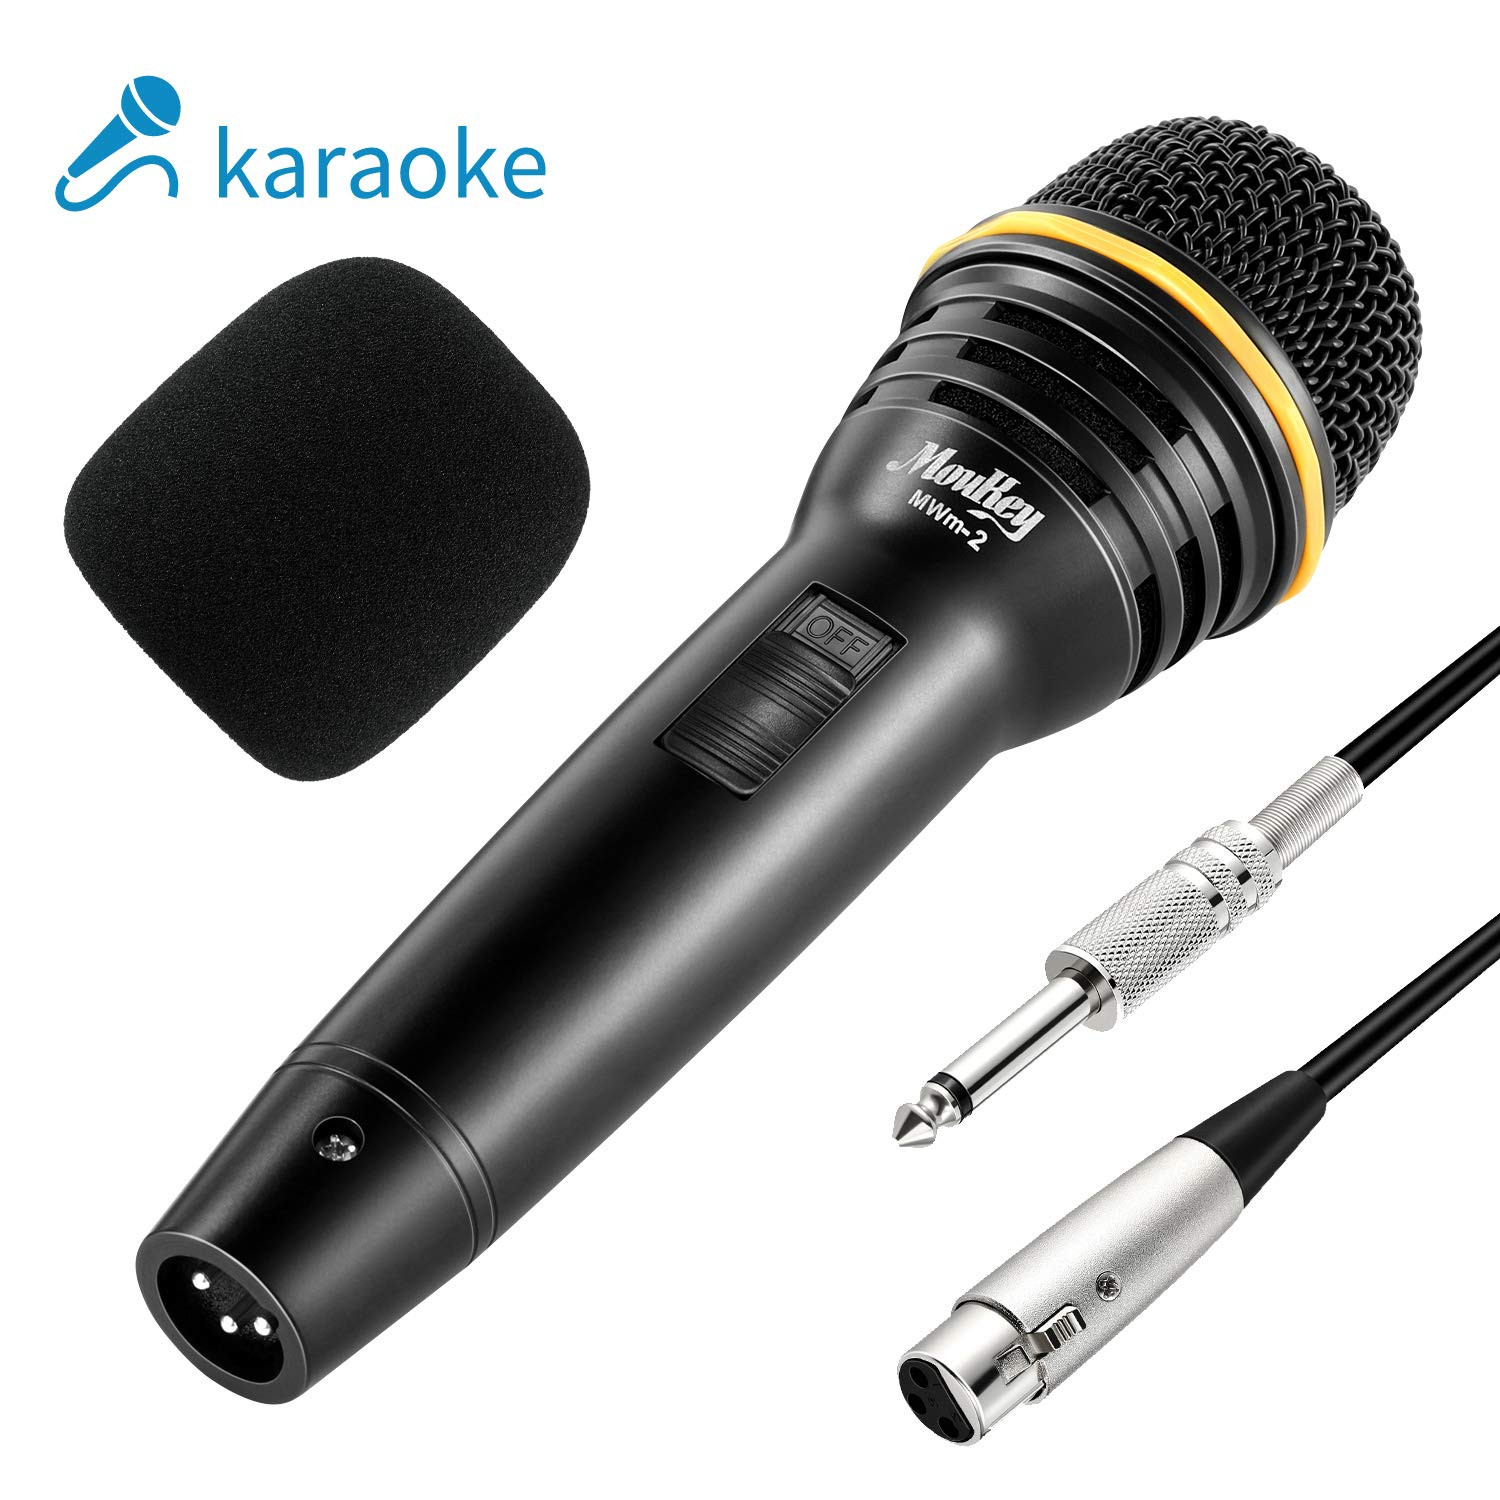 Moukey Dynamic Karaoke Microphone Wired Metal Handheld Mic for Singing/Speech/Stage/Karaoke Machine/Event 16.40 ft XLR to 1/4'' Cable - (MWm-2) by Moukey